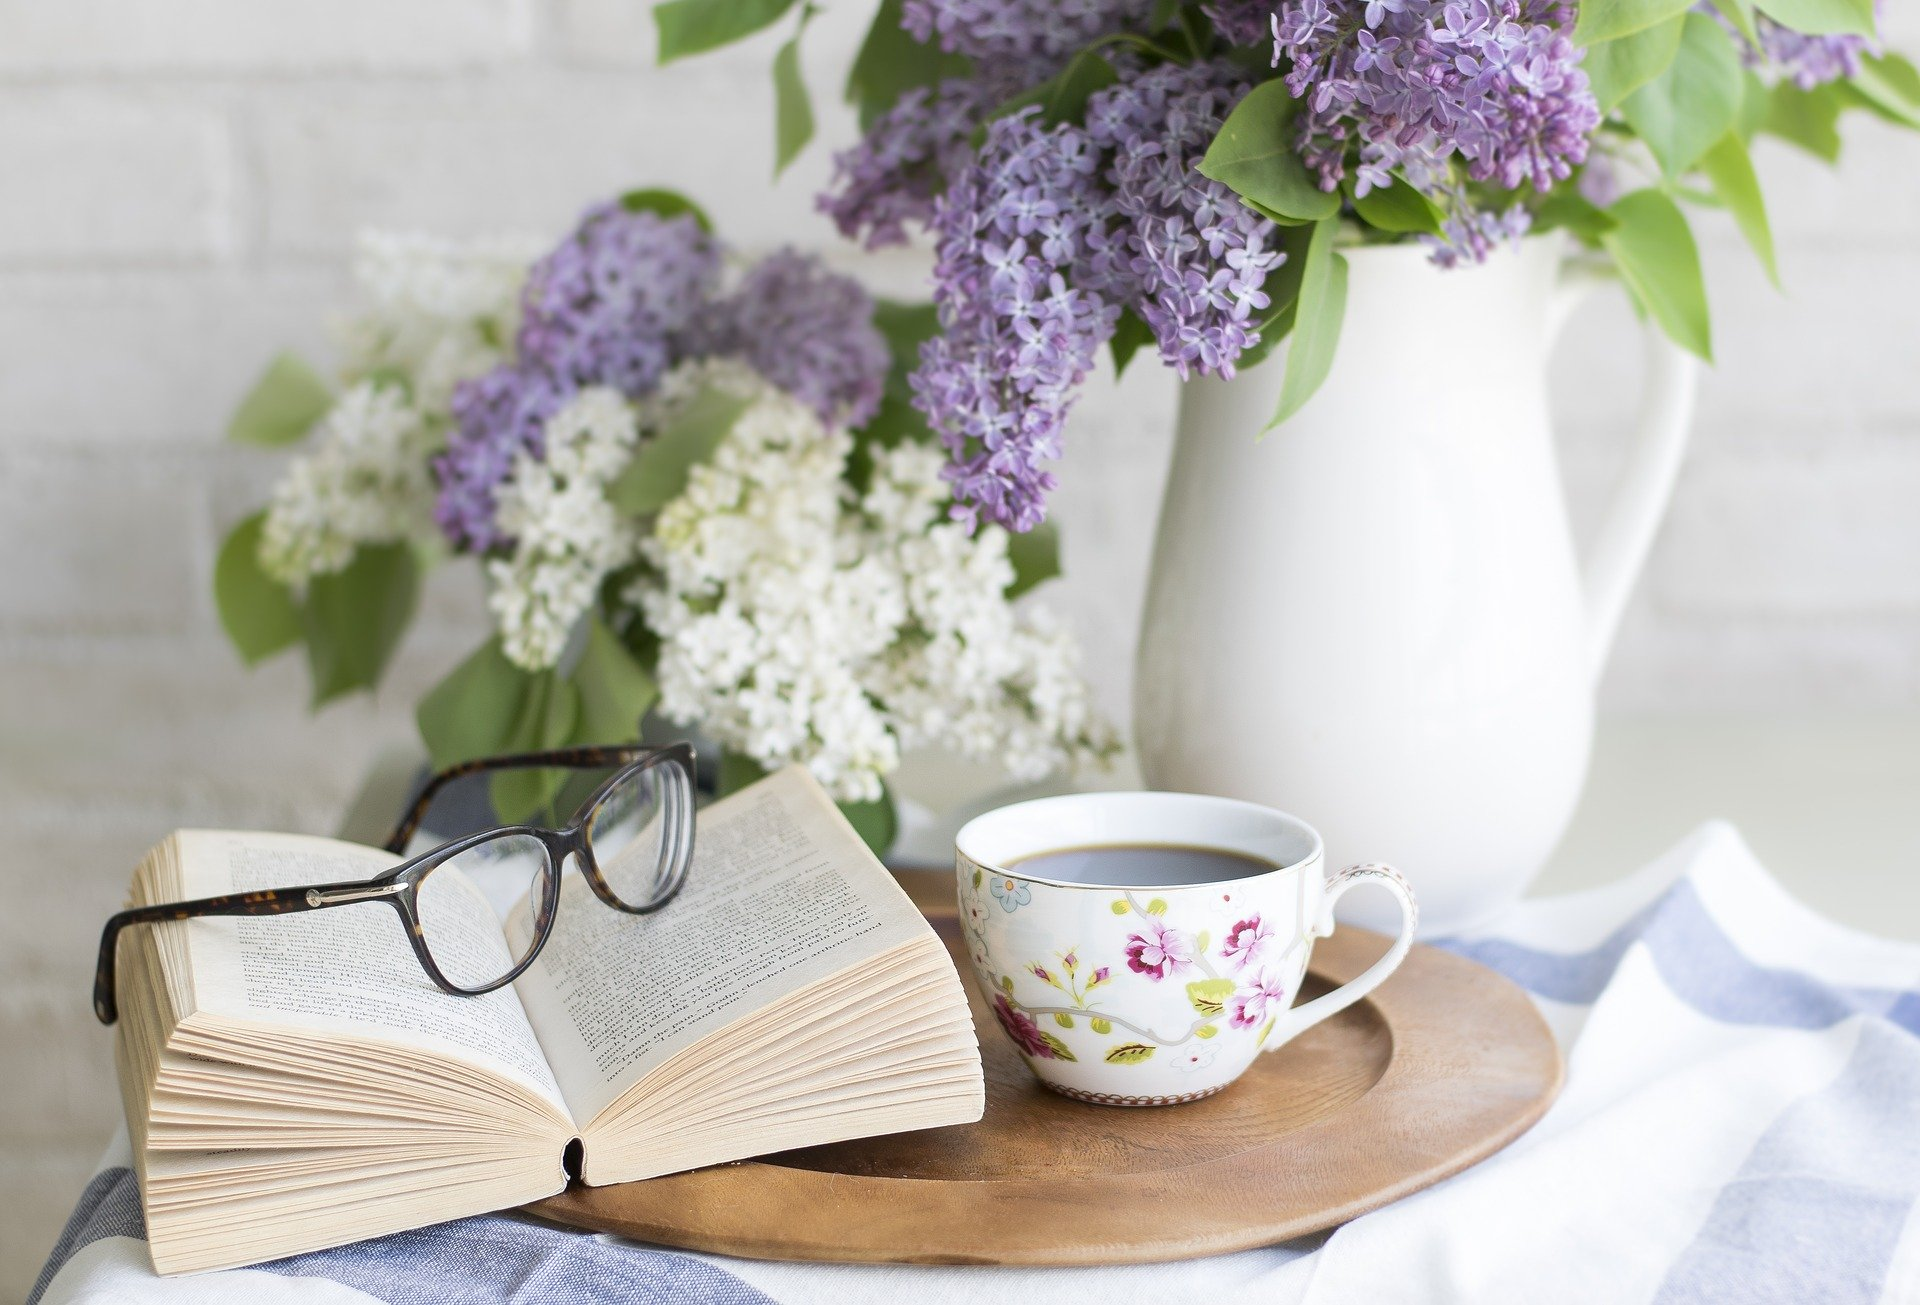 Tea with flowers, book and reading glasses